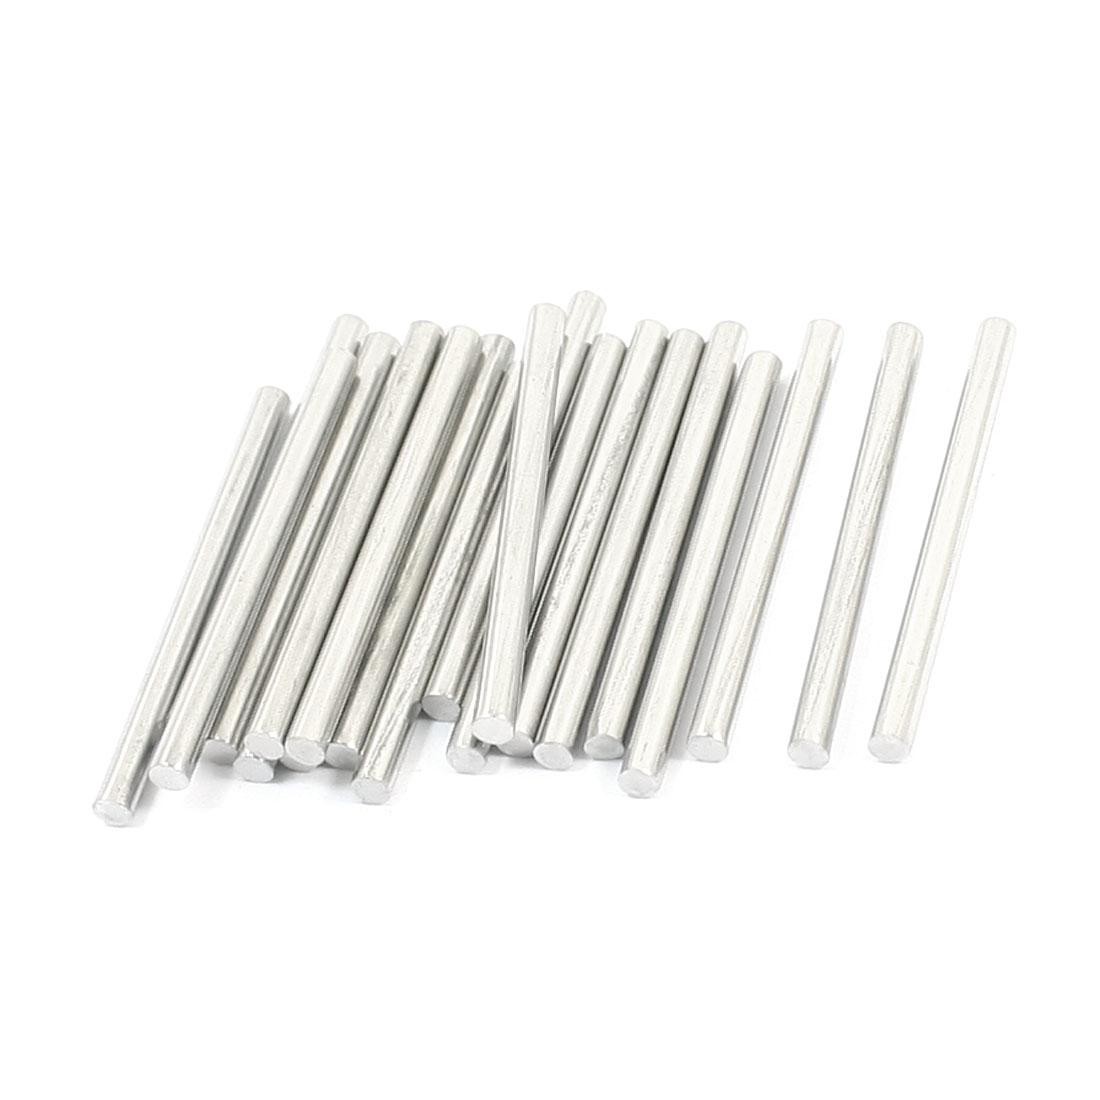 20PCS RC Helicopter Car Toy Repairing Parts Round Rod 35mm x 2.5mm